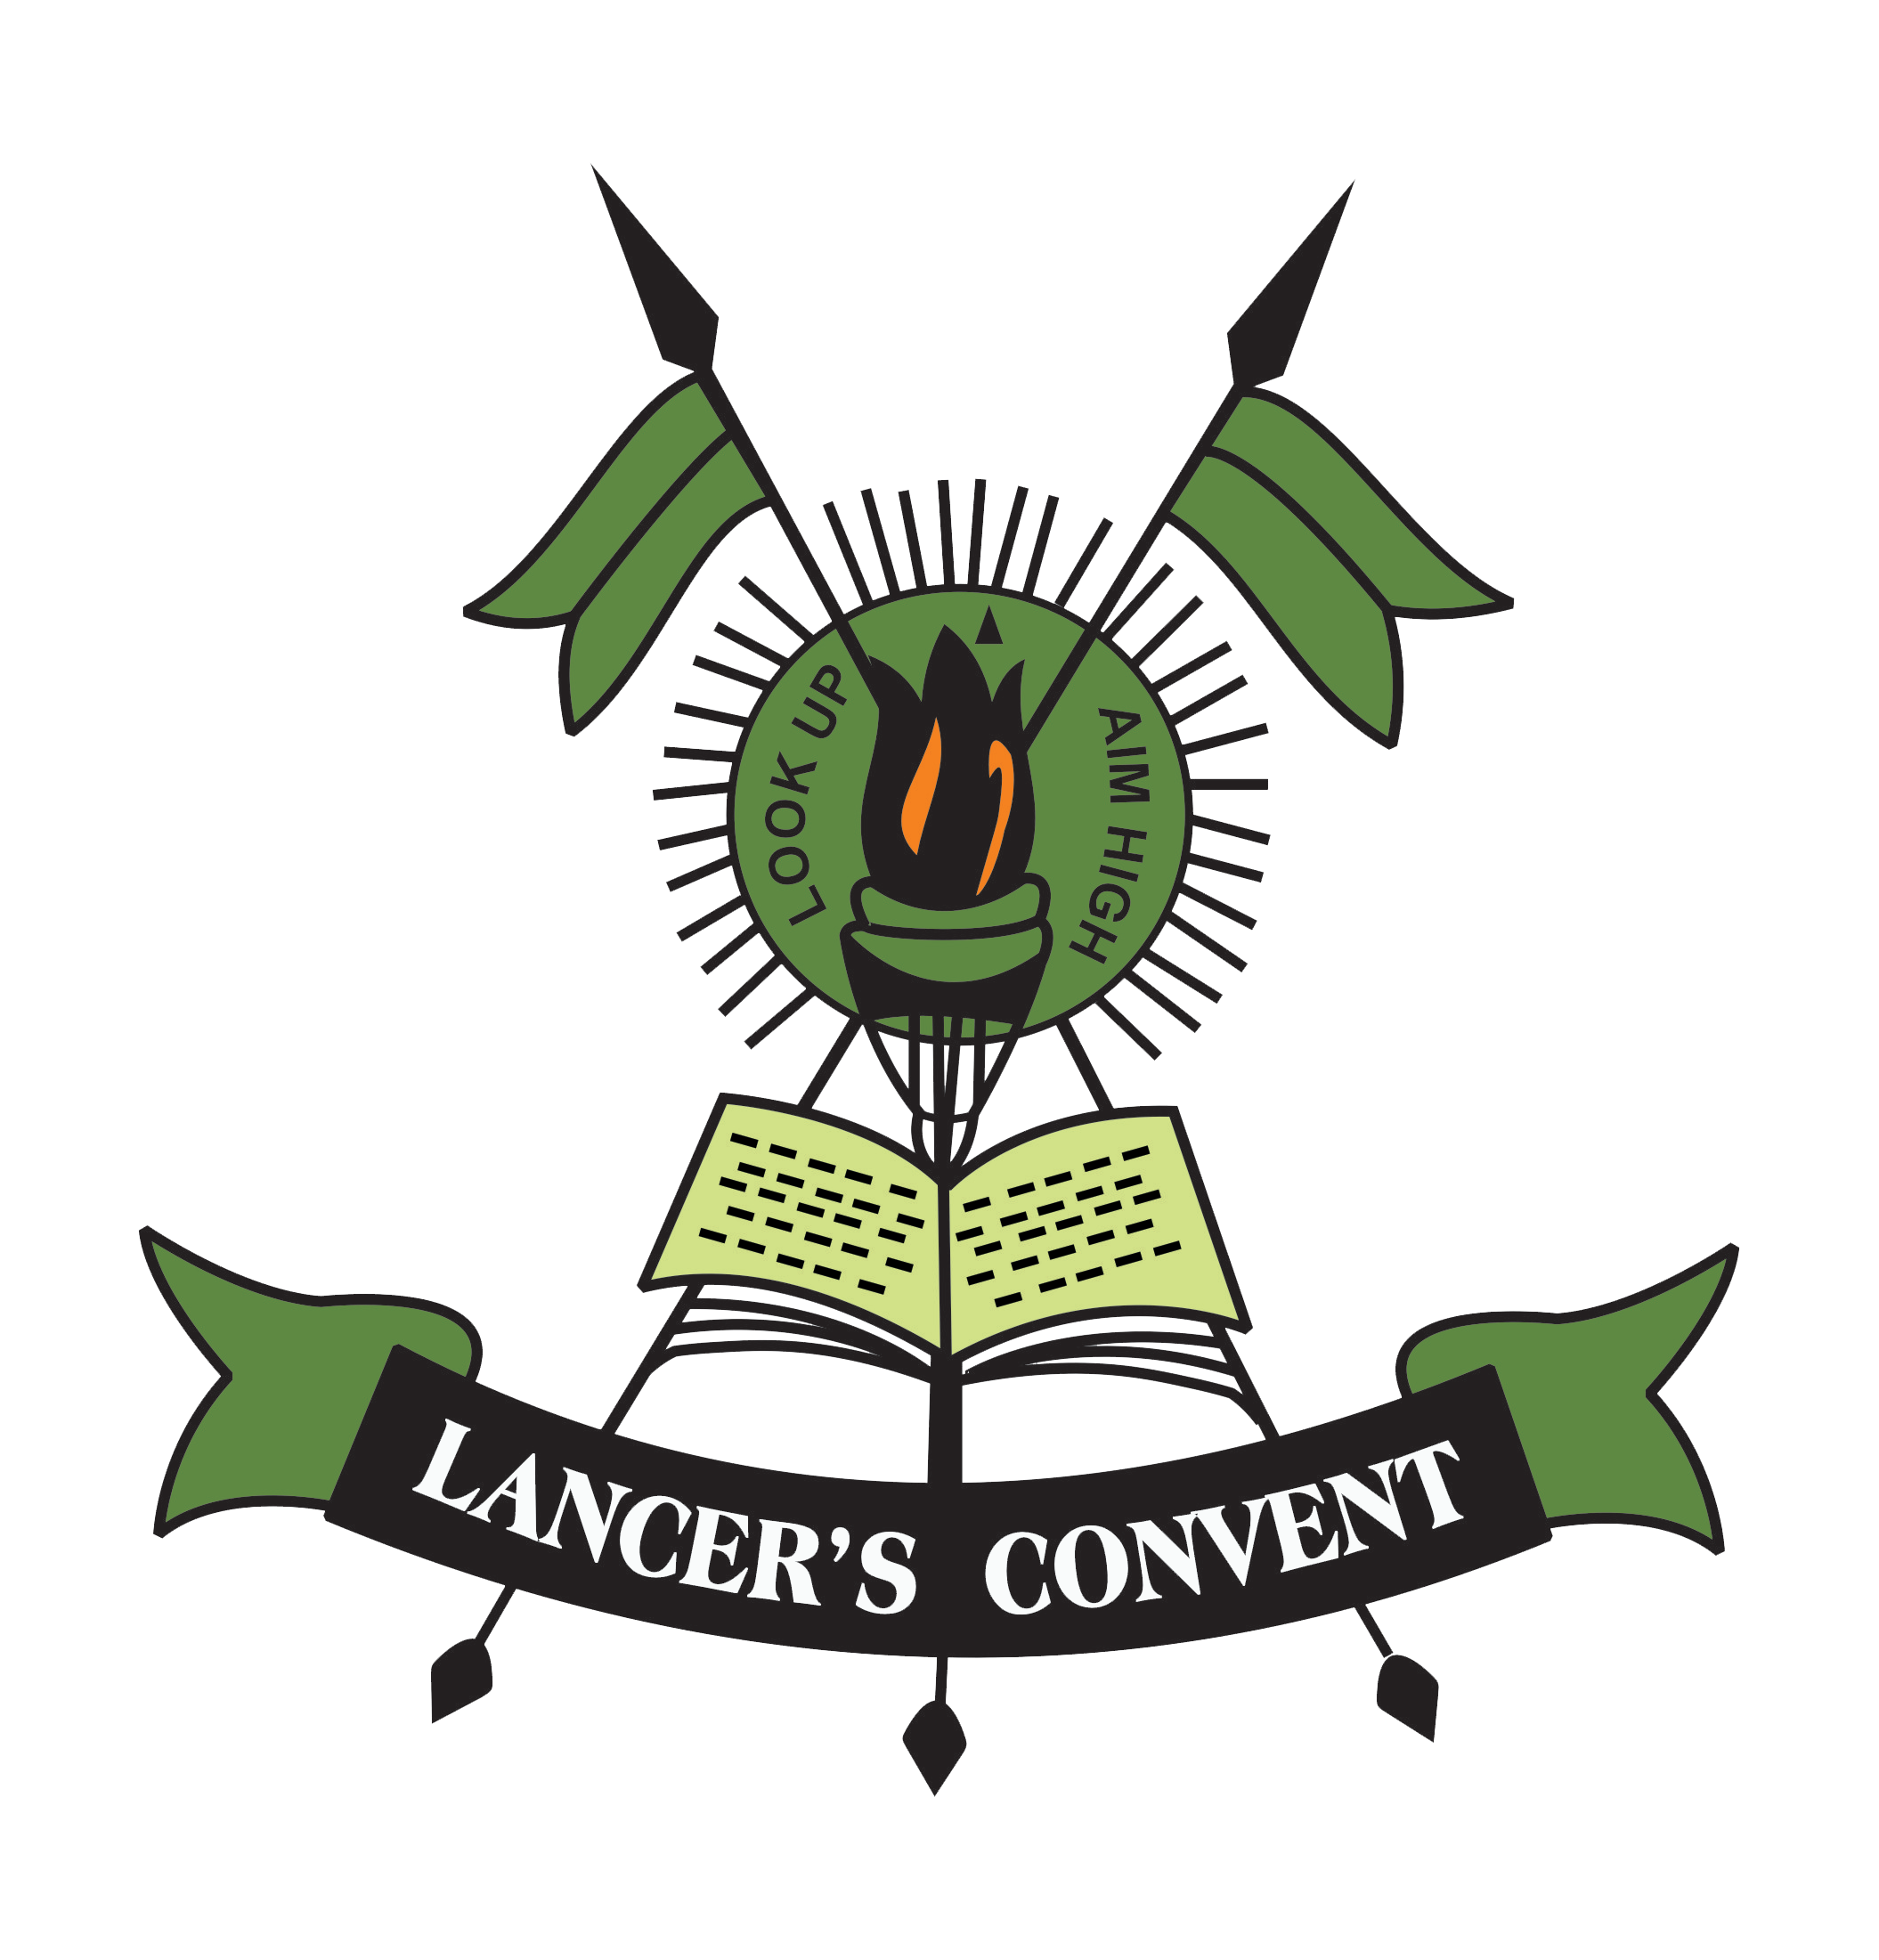 lancers convent holiday homework 2017-18